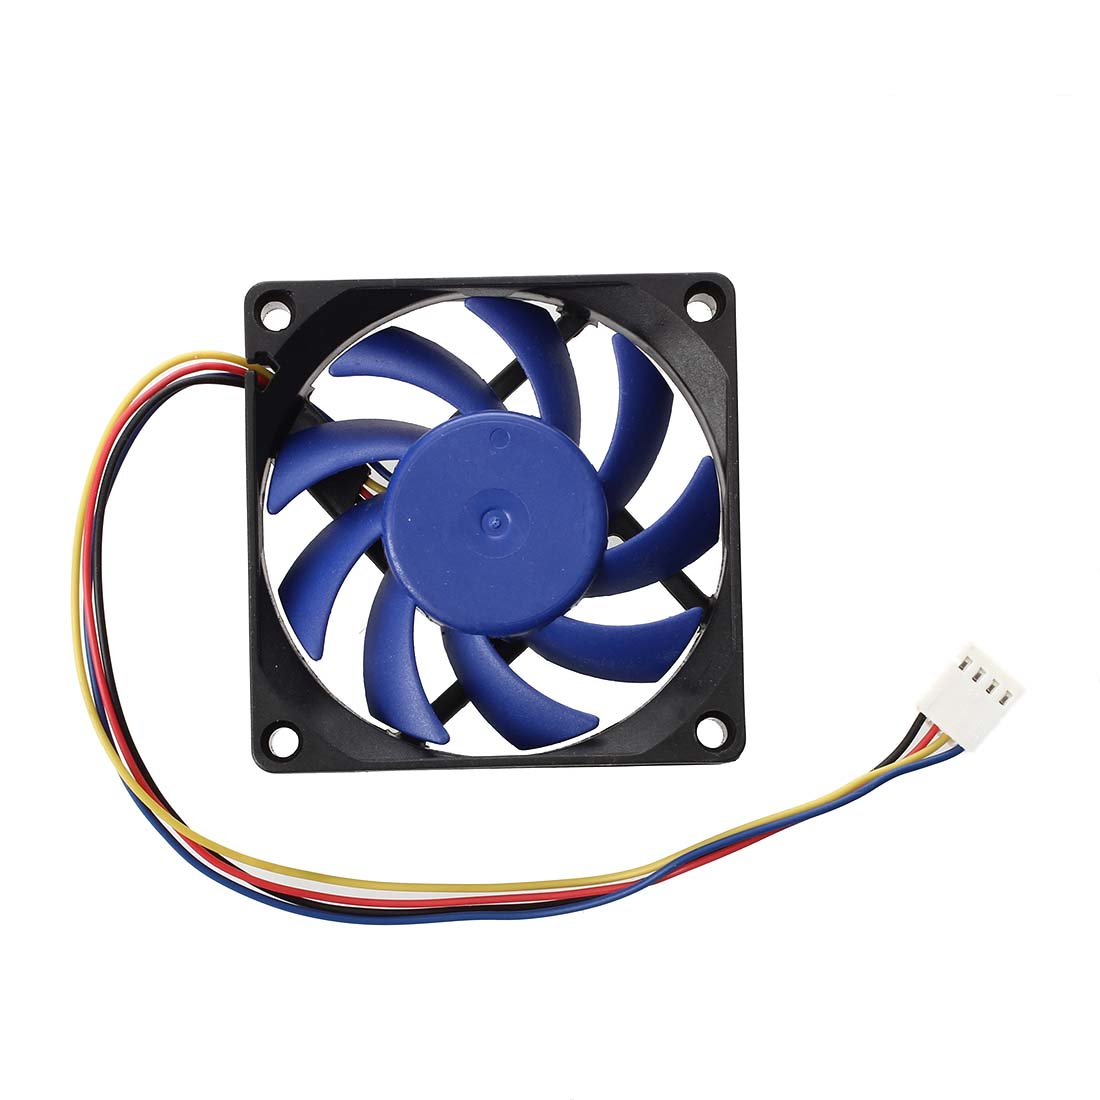 PPYY NEW -12V DC 32 <font><b>70mm</b></font> 4-Pin Computer Case CFM <font><b>PWM</b></font> CPU PC <font><b>Fan</b></font> Blue & Black image